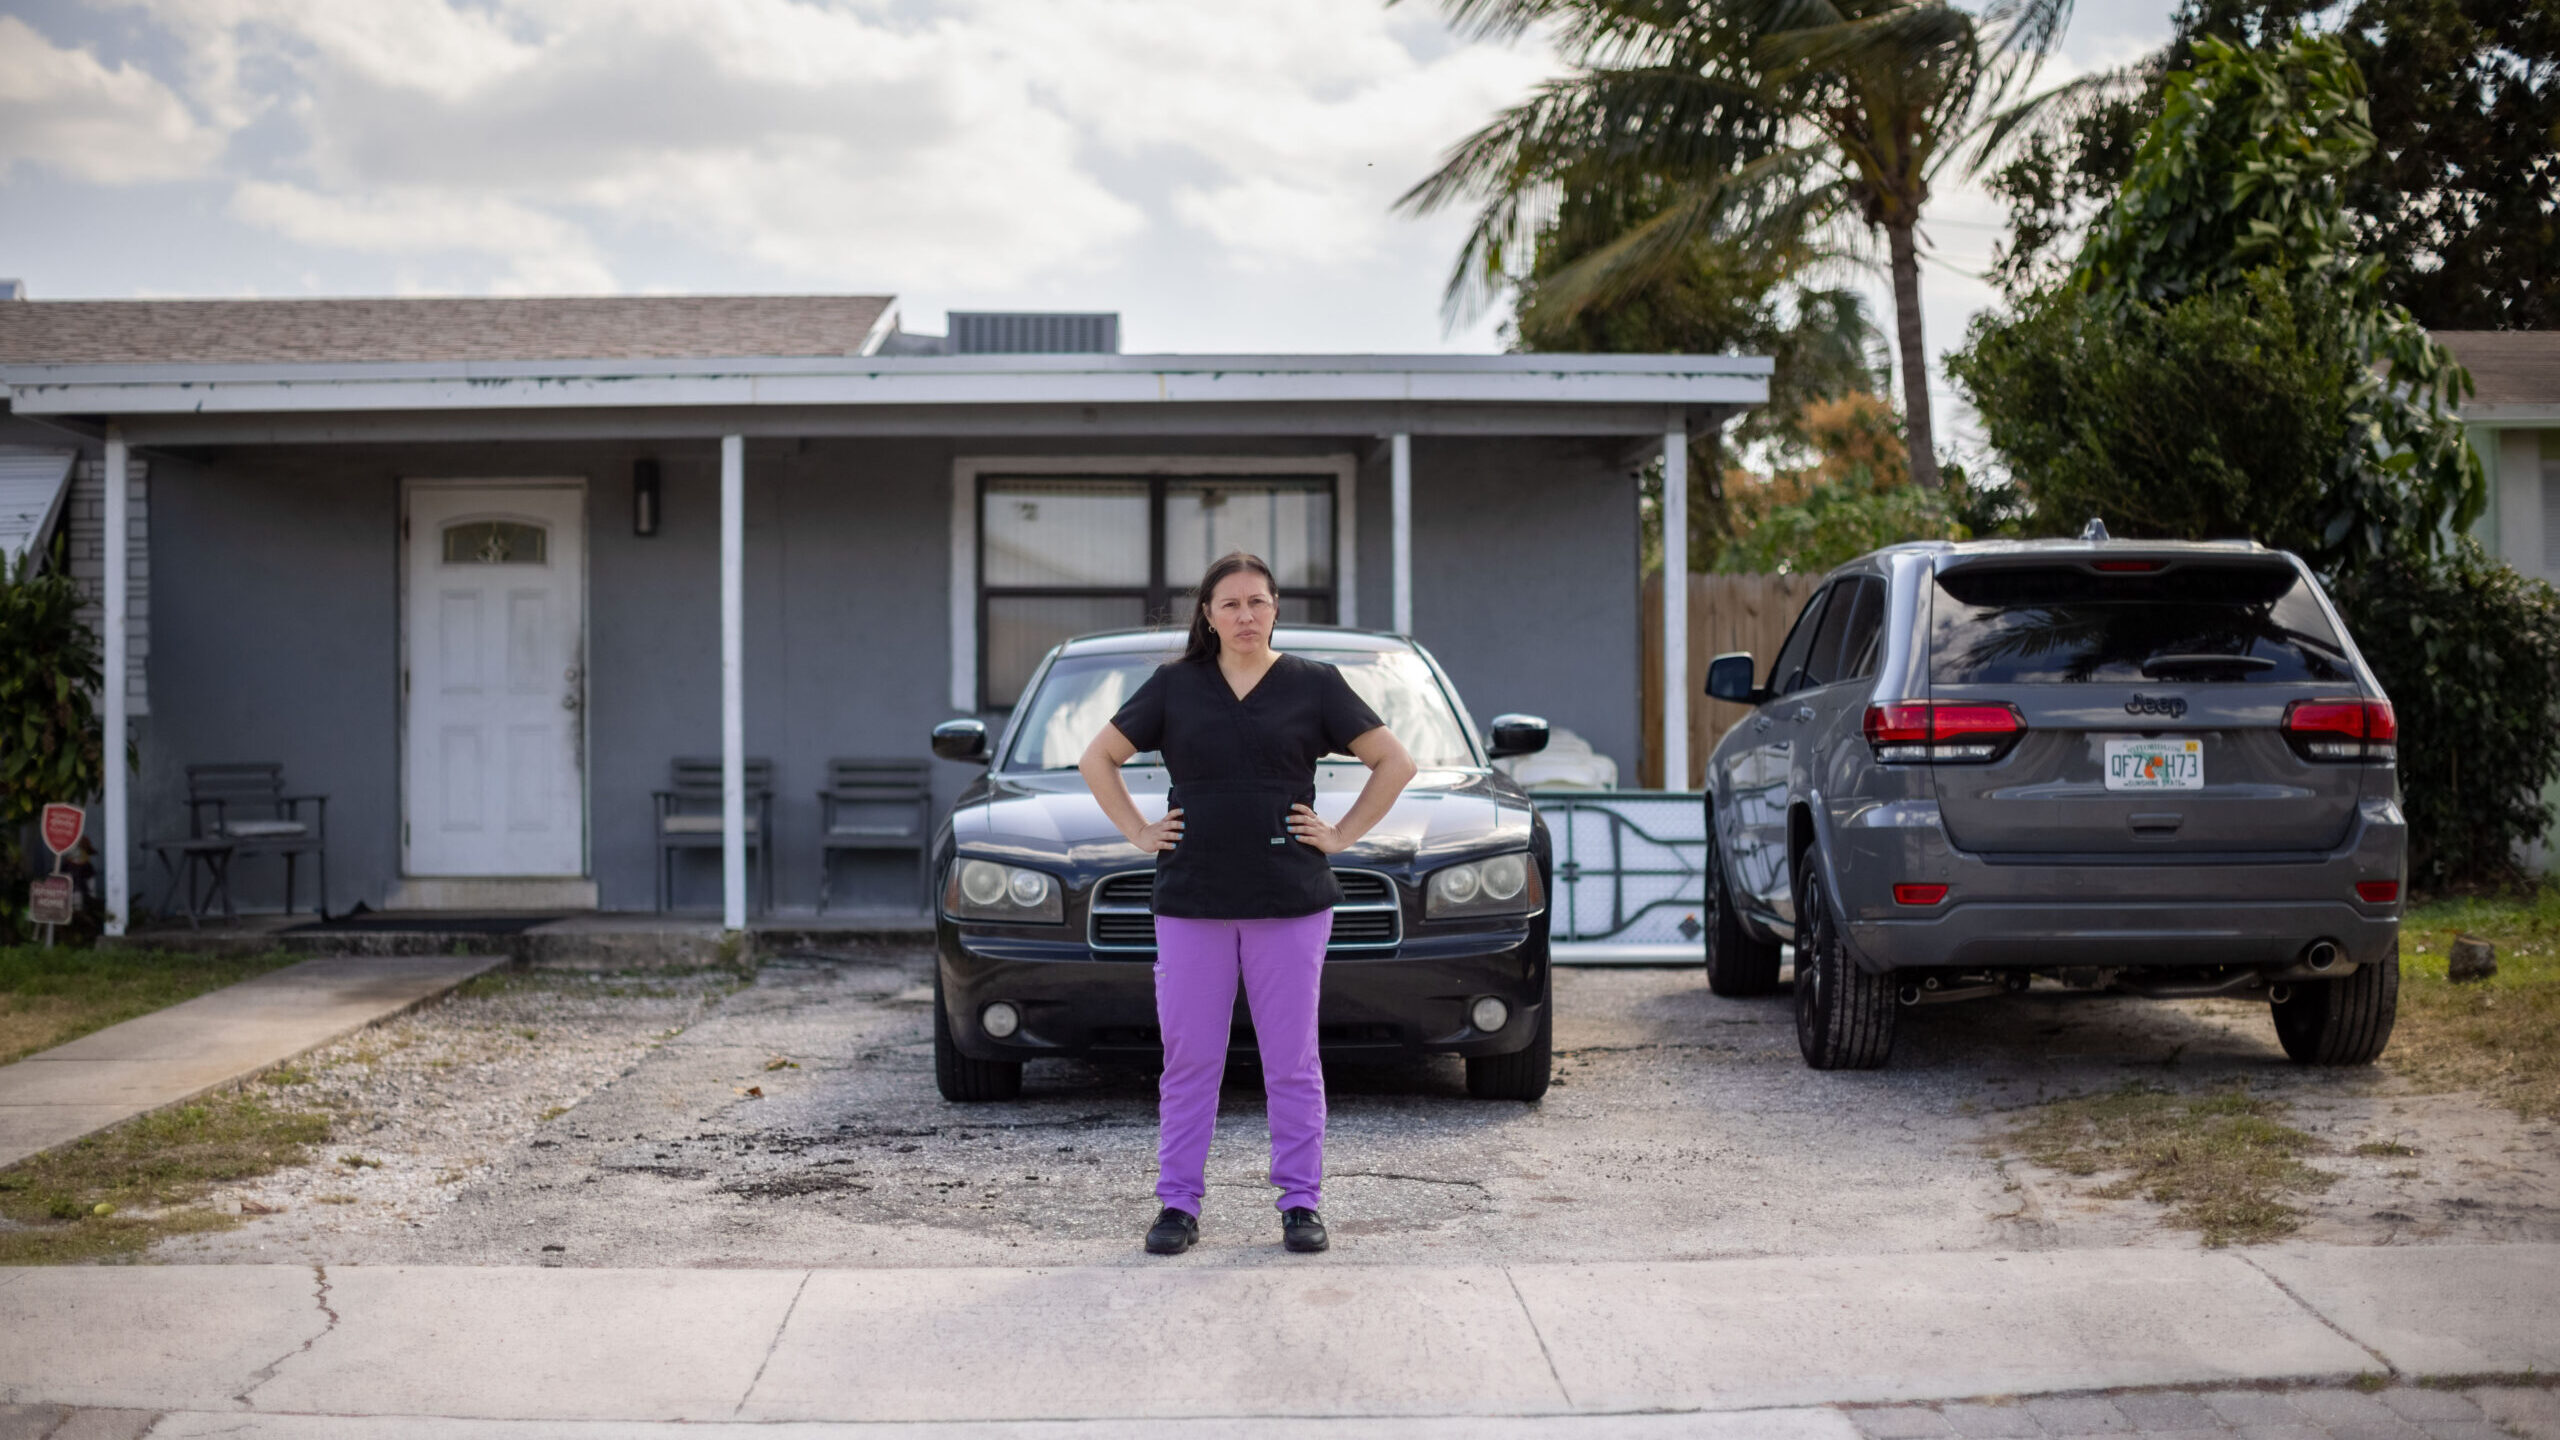 Woman Sues Town That Fined Her $165,000 For Parking On Her Own Lawn